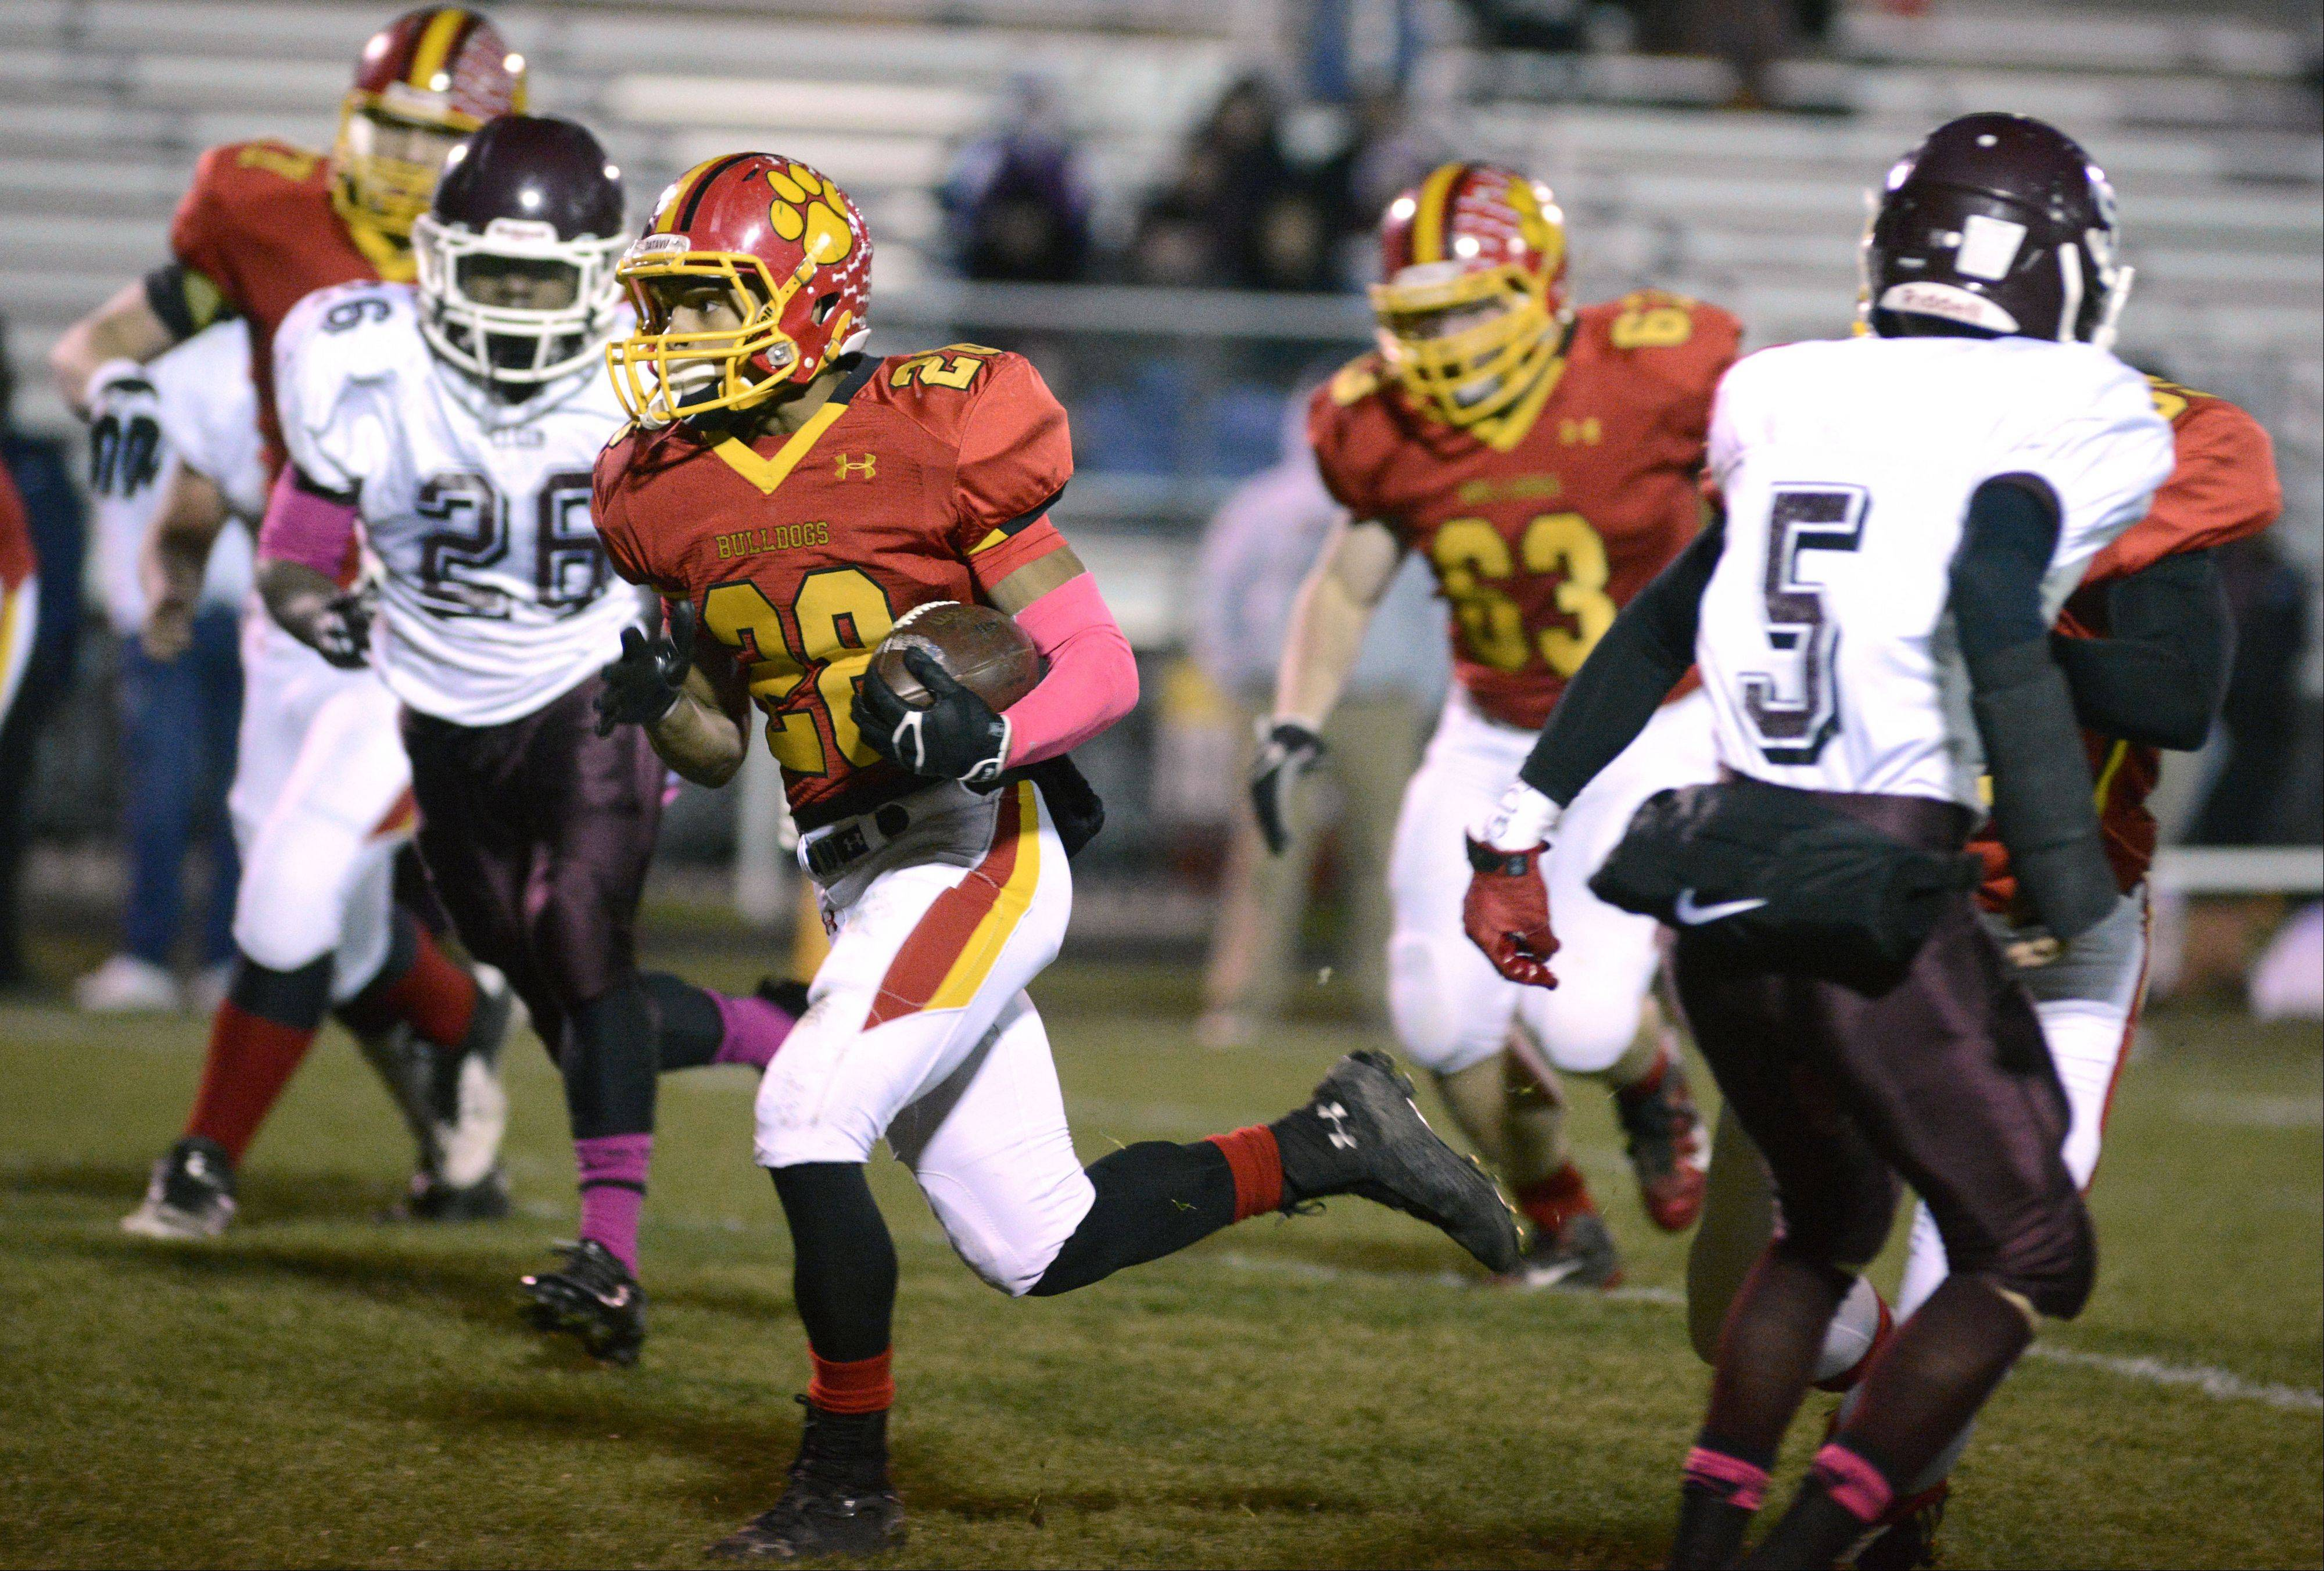 Batavia's Anthony Scaccia makes his way down to scoring a touchdown in the first quarter.